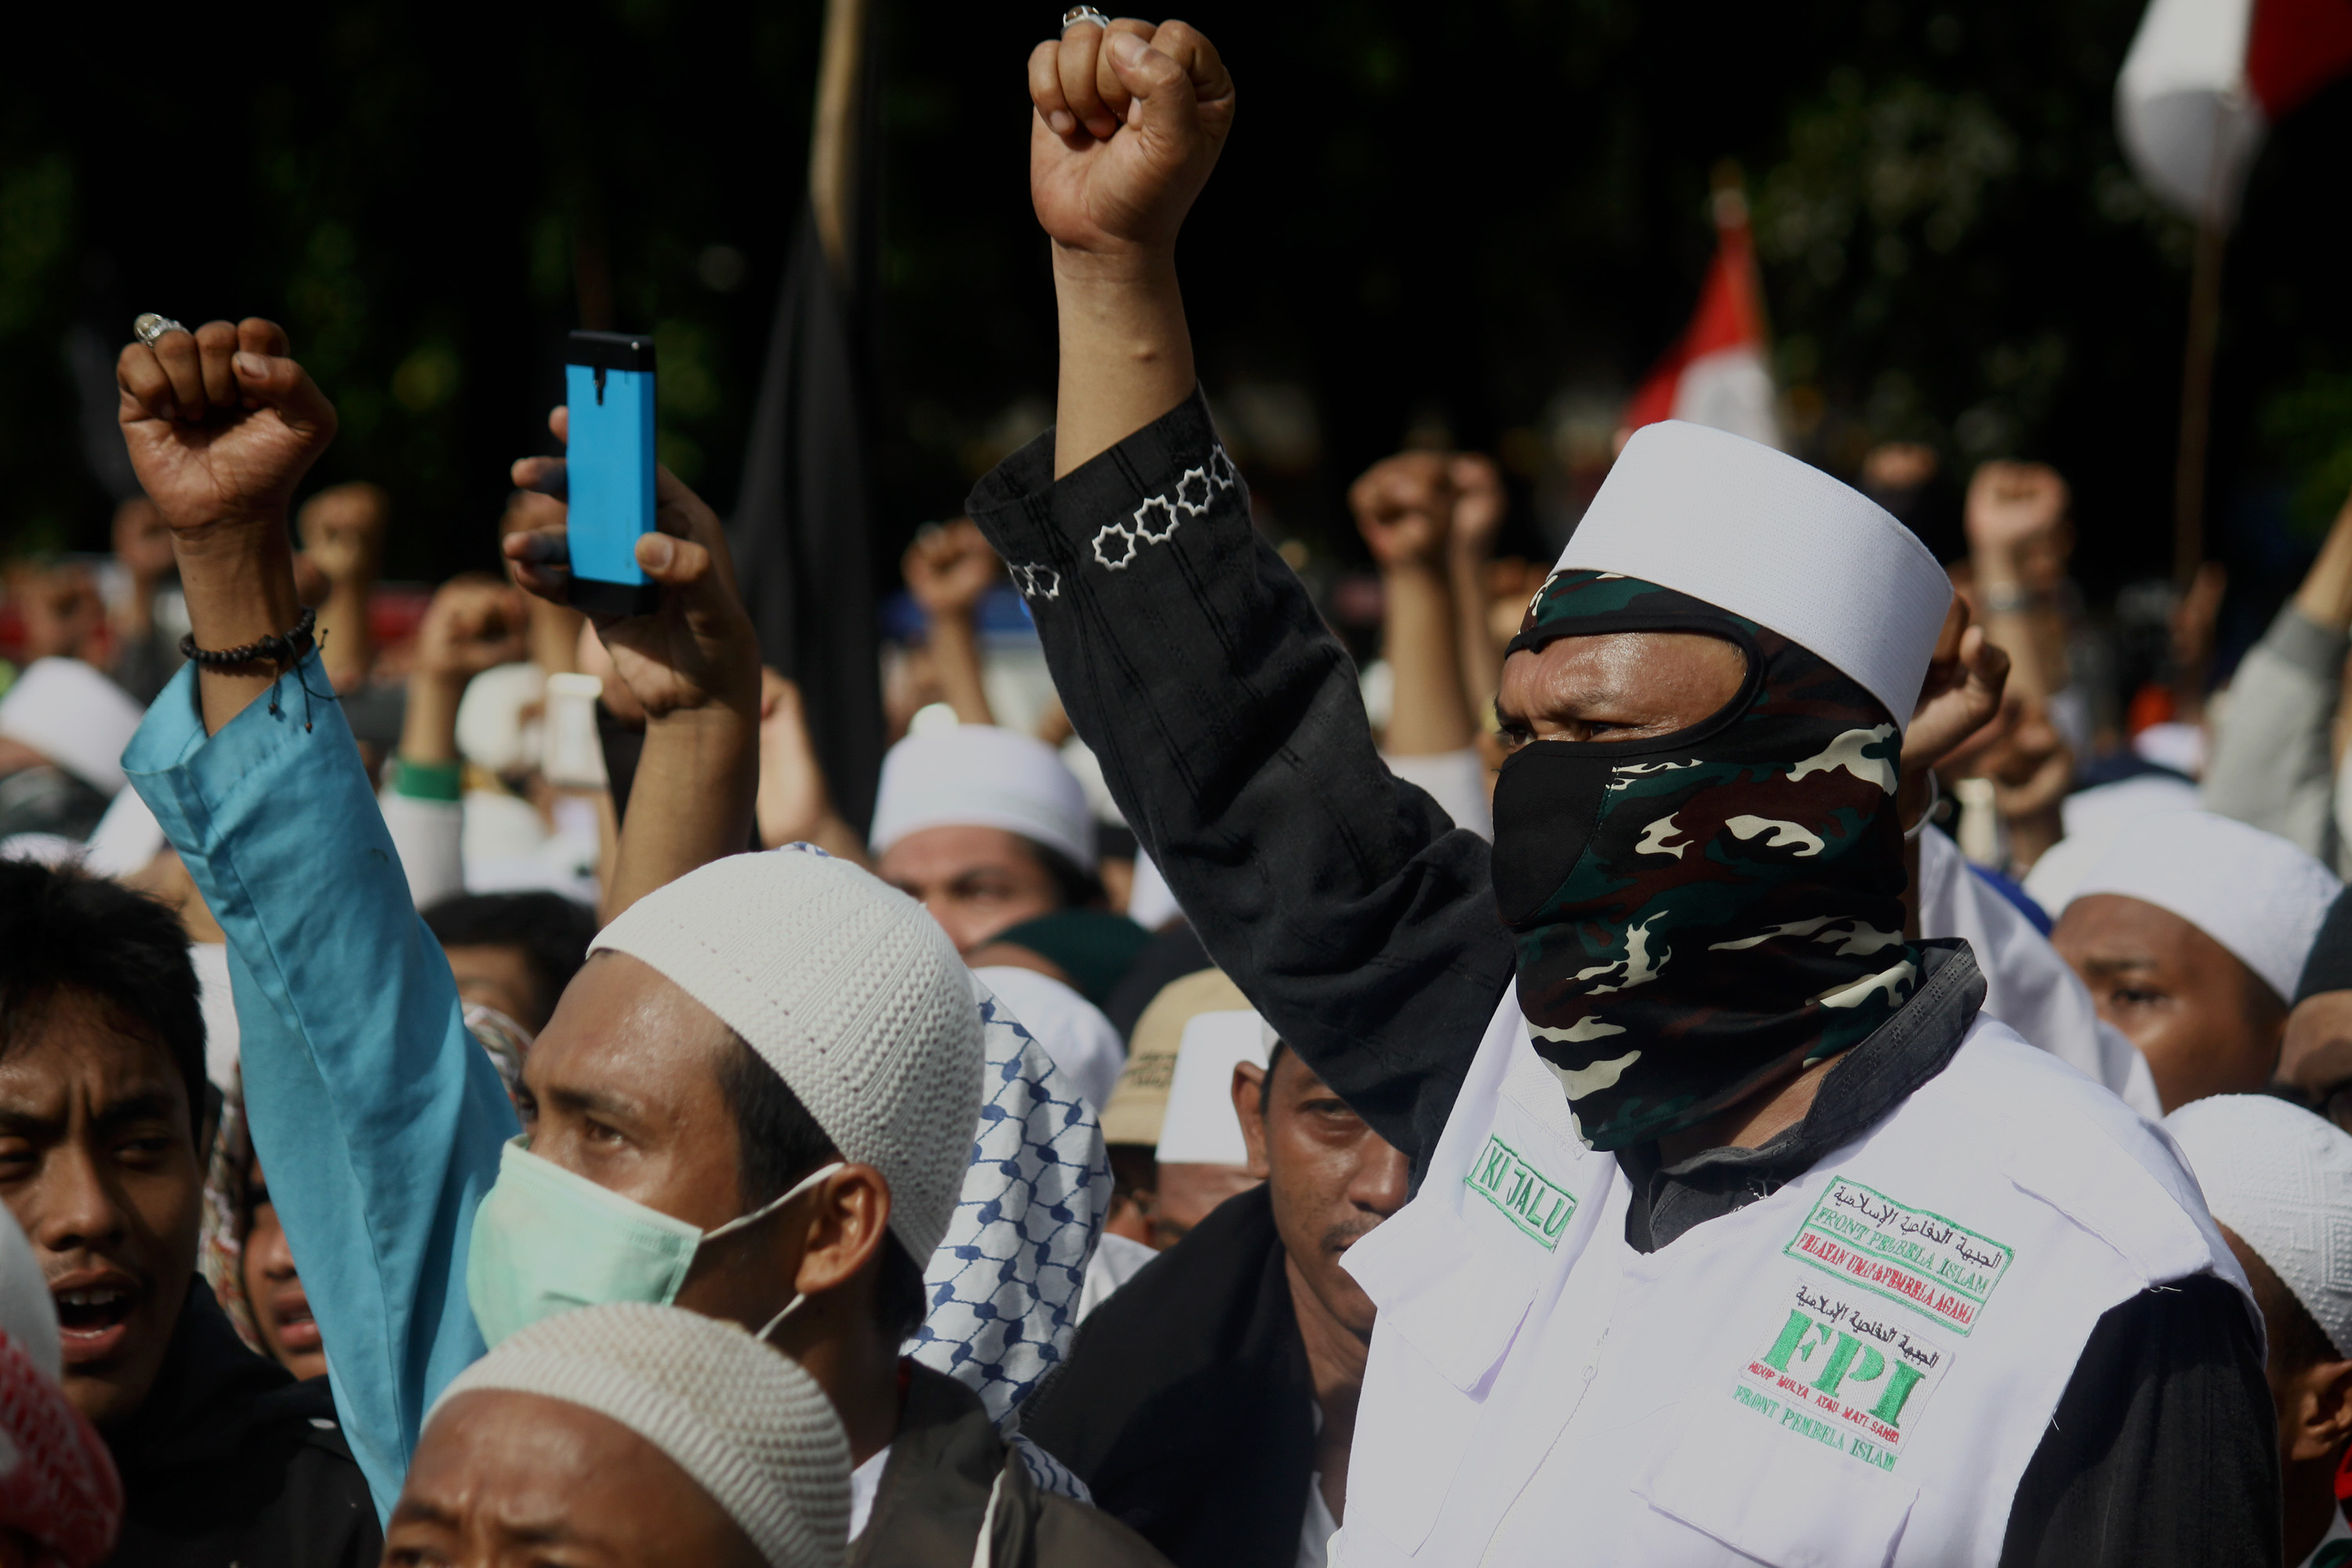 Thousands of Muslims hold a demonstration in front of the Jakarta Metropolitan Police Headquarters on Jan. 23, 2017, in Jakarta